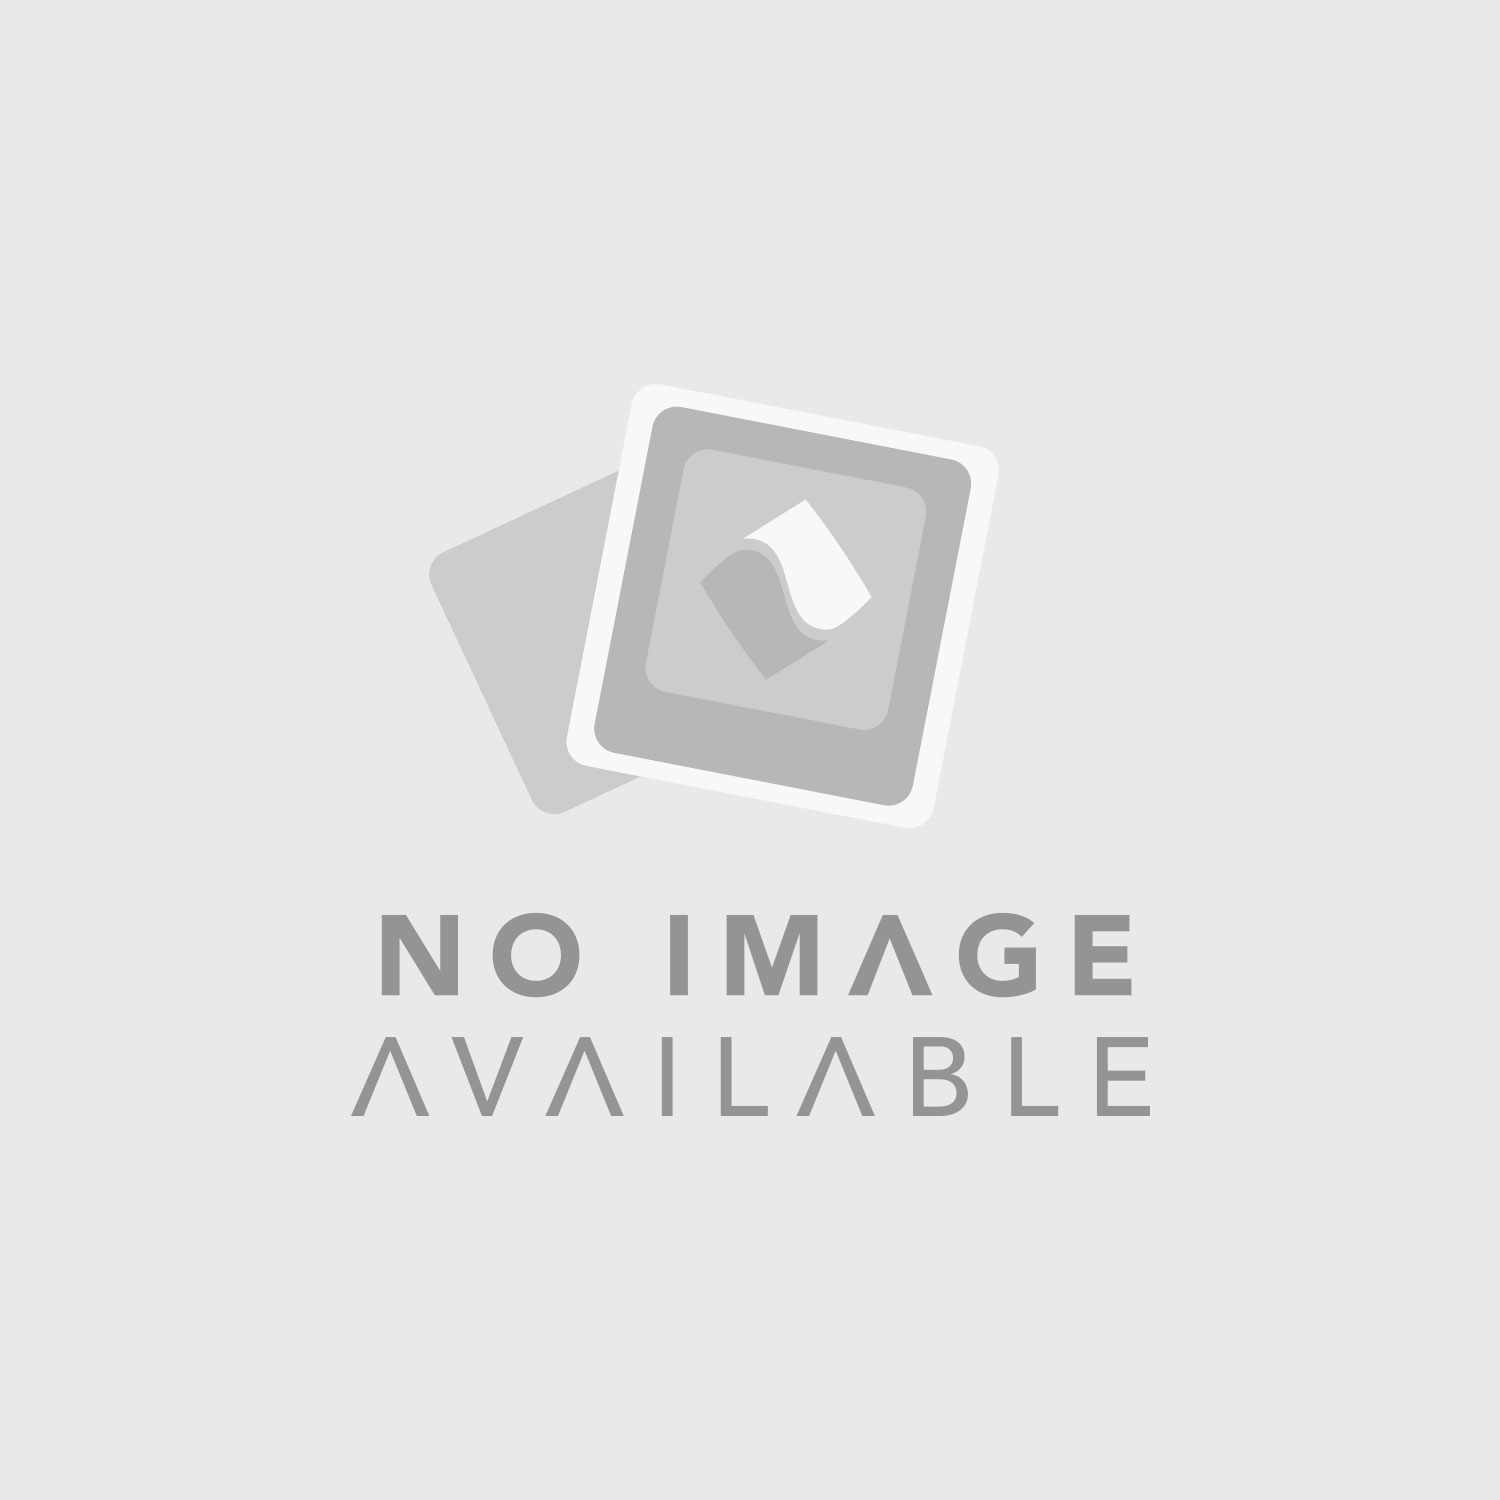 Shure SRH1540 Closed-Back Over-Ear Premium Studio Headphones (New Packaging)